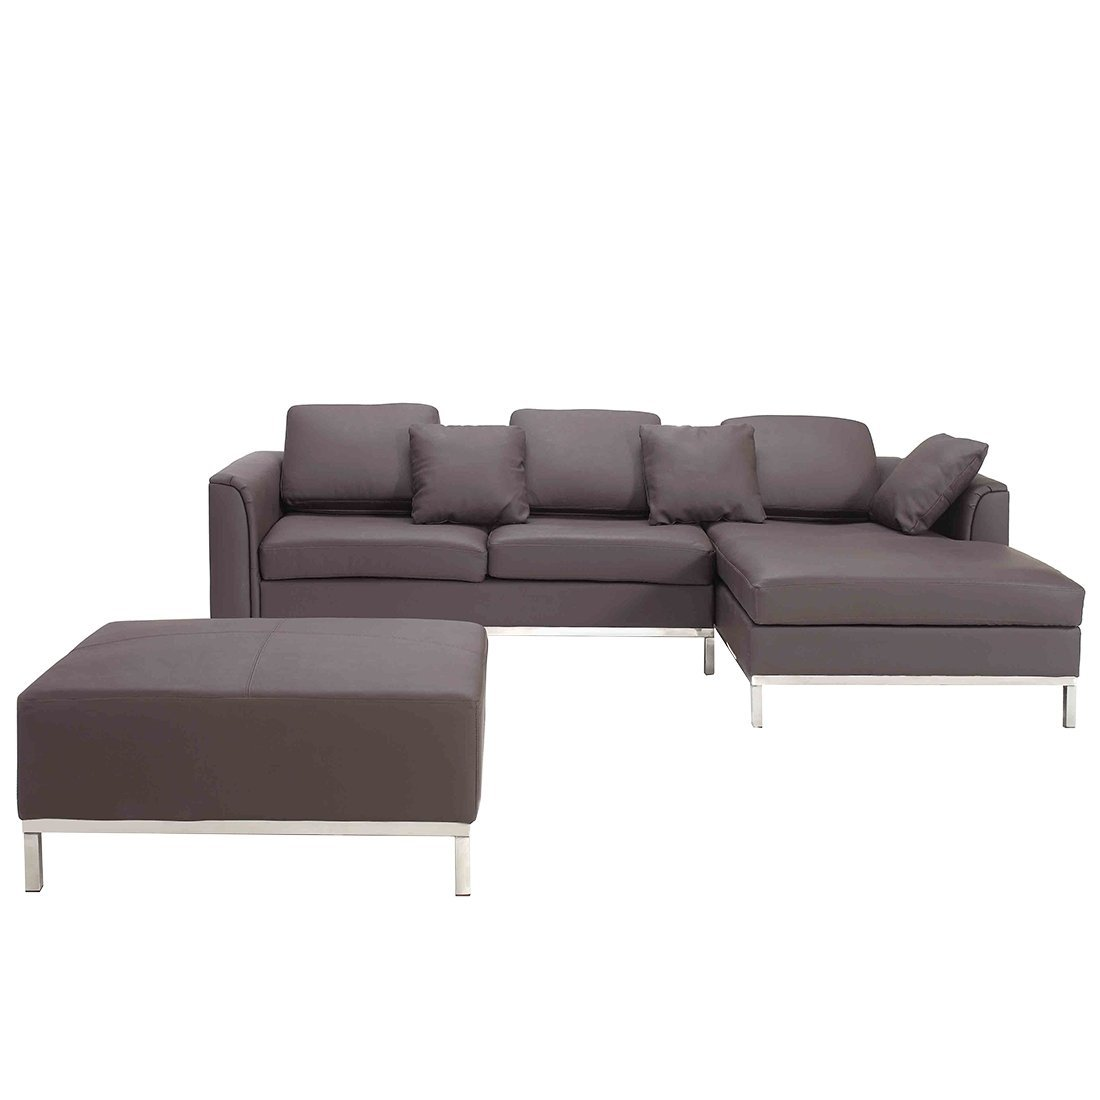 Amazon.com: Beliani Oslo Modern Leather Sofa with Chaise and Ottoman ...